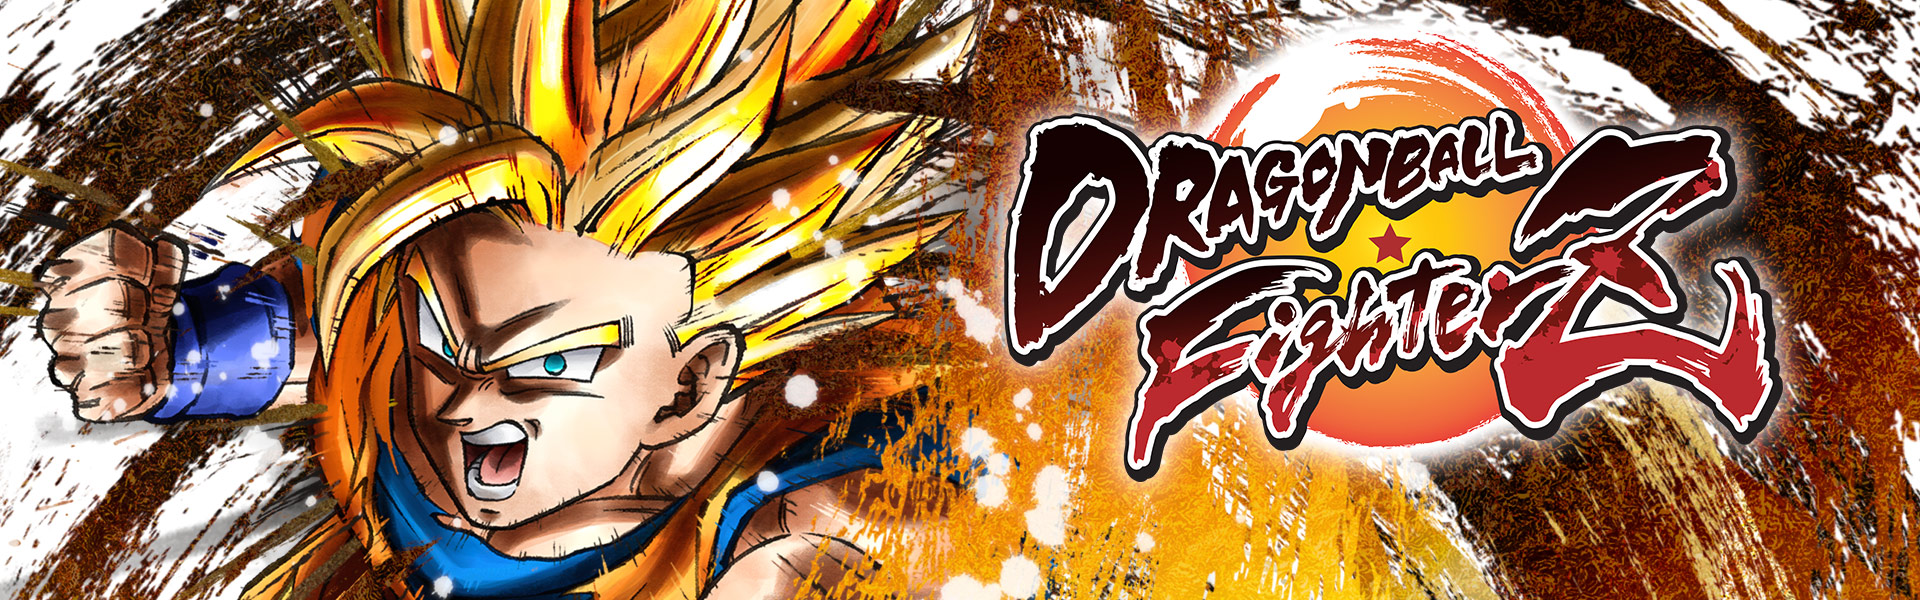 Dragon ball fighterz, Super Saiyan Goku virado para a frente e a atacar